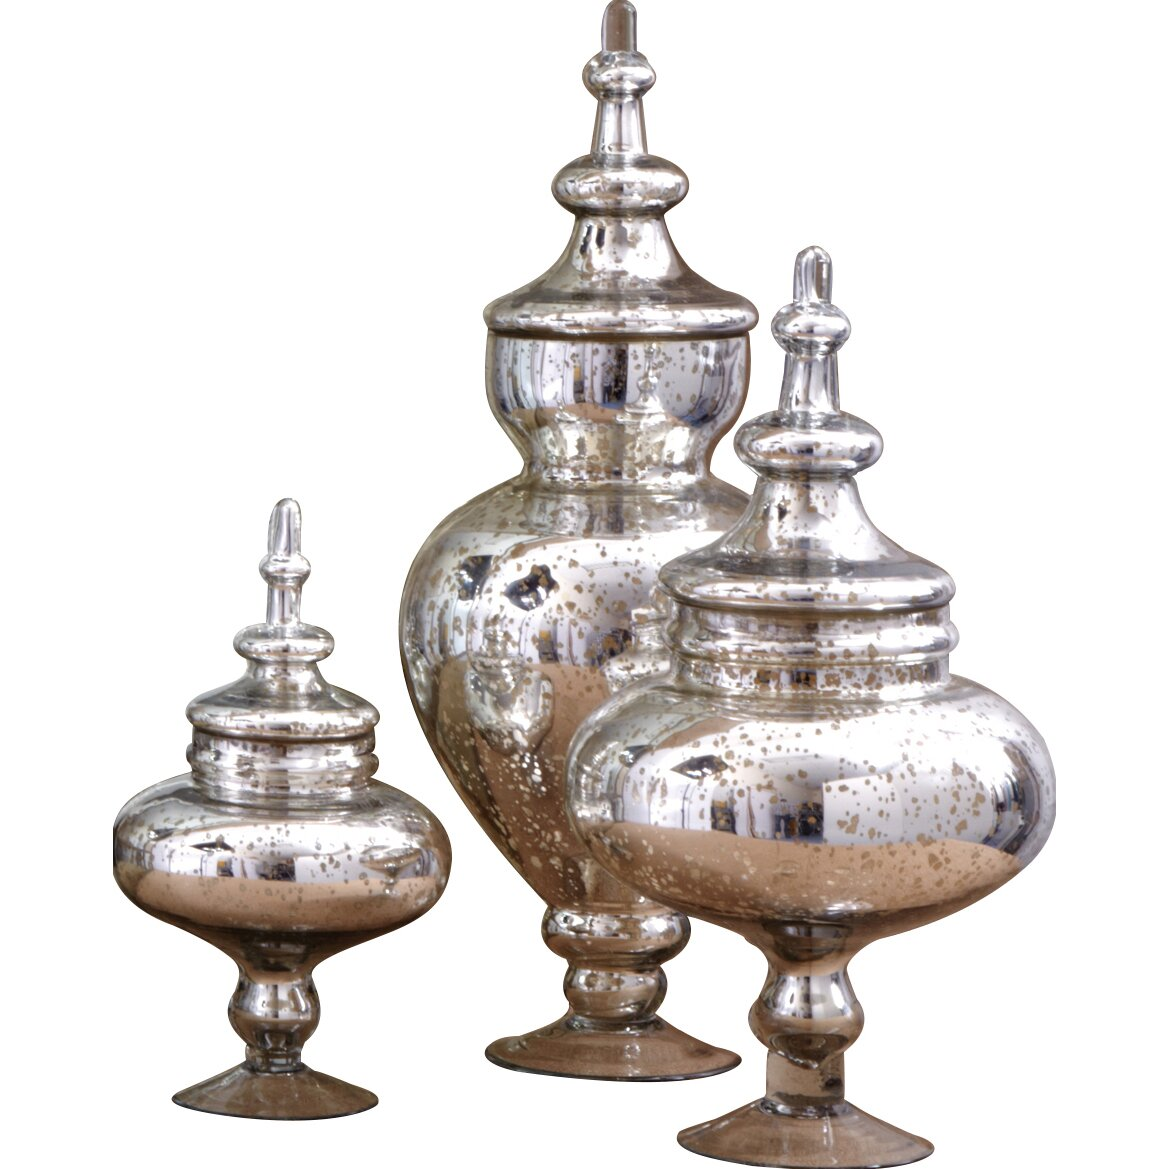 House of hampton 3 piece vintage covered decorative urn for Antique decoration pieces